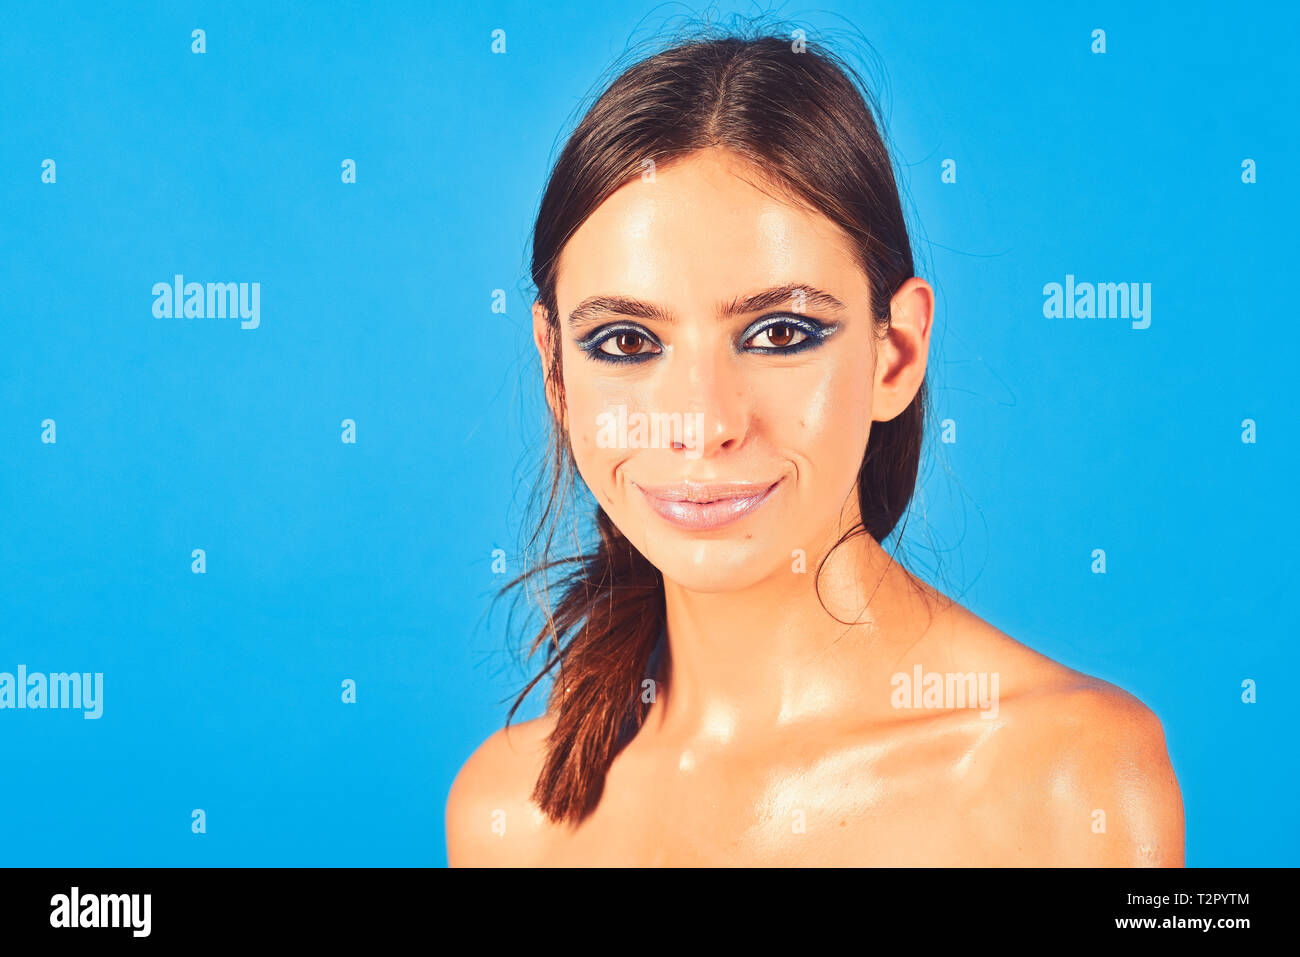 Woman Smile With Oily Skin Face Shoulders Skincare Woman With Makeup Long Brunette Hair Beauty Skincare Treatment Therapy Beauty Look Youth Stock Photo Alamy